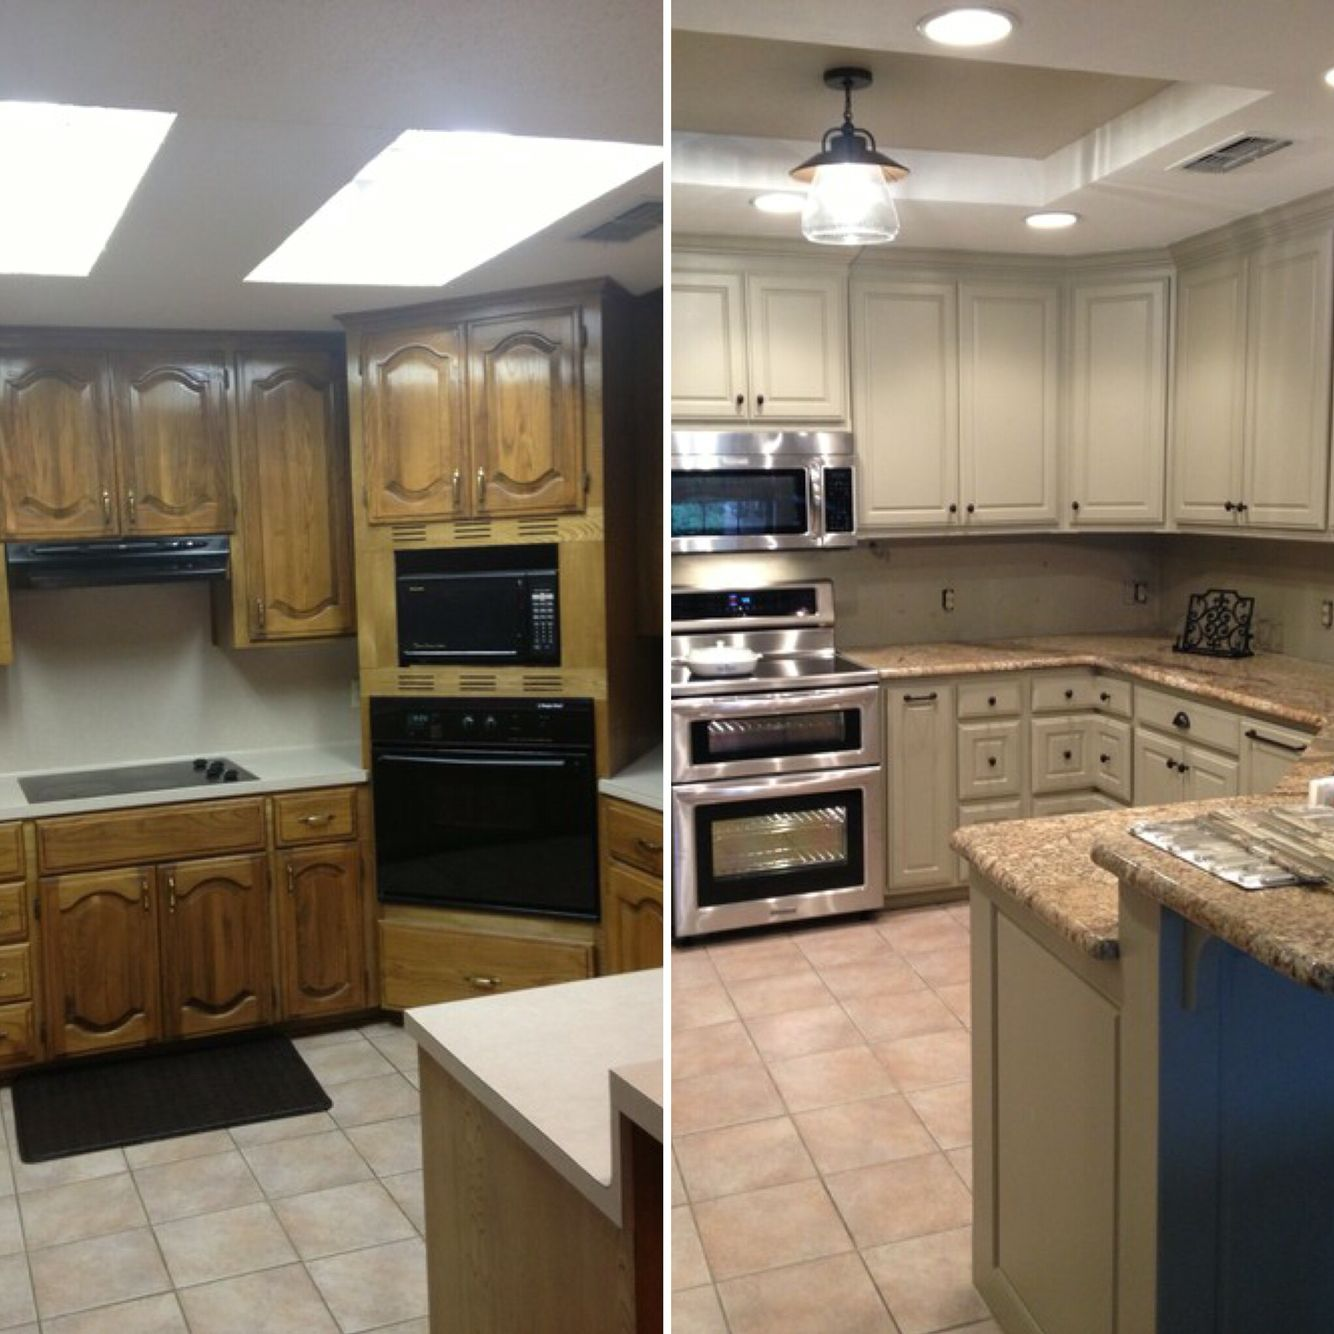 Overhead Kitchen Lighting Ideas: Before And After For Updating Drop Ceiling Kitchen